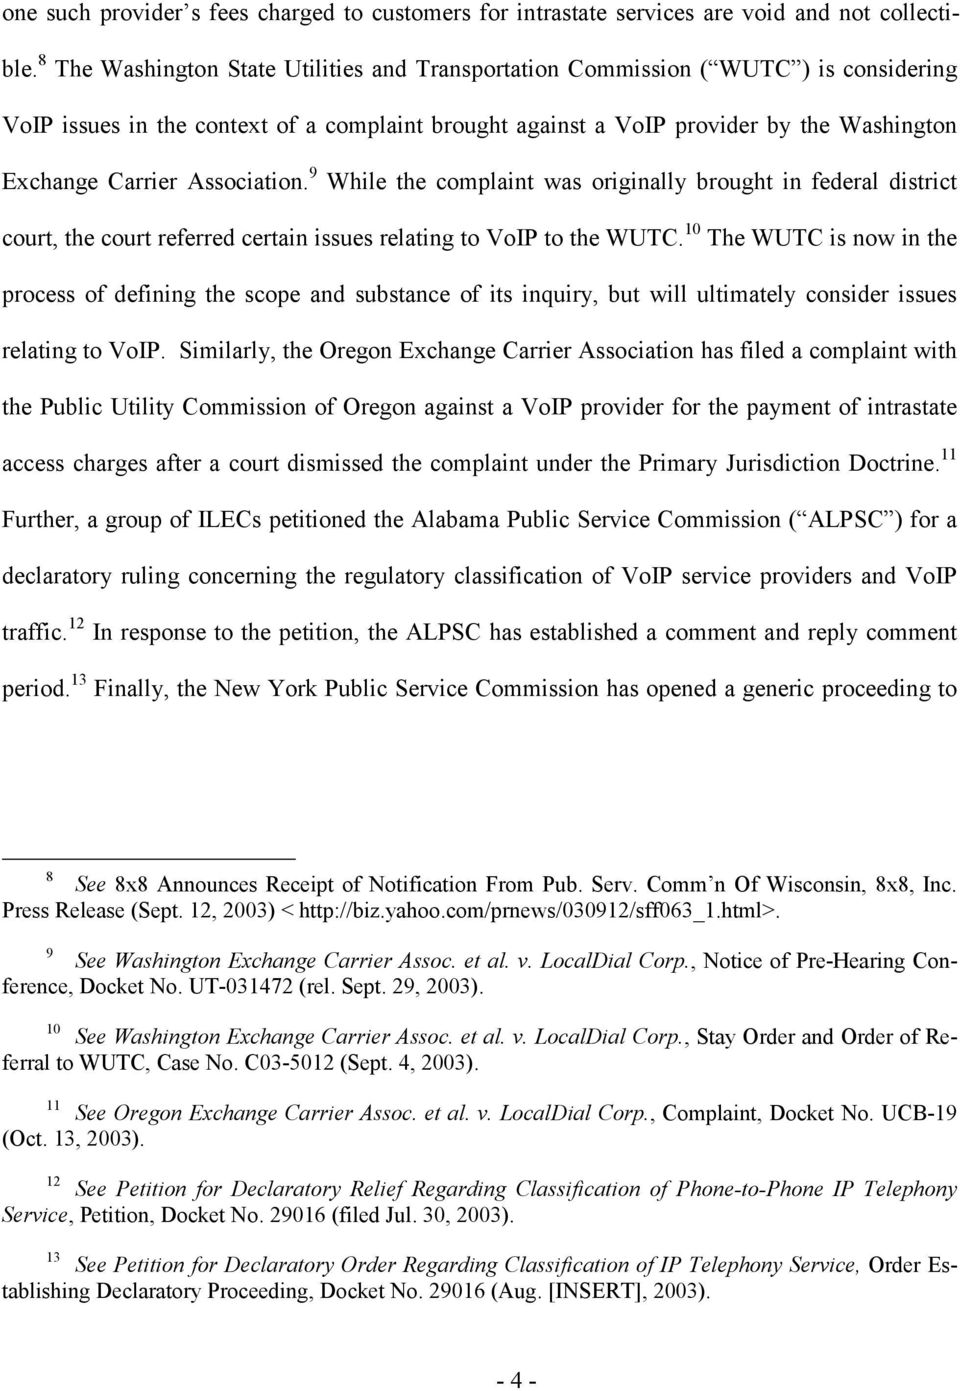 Association. 9 While the complaint was originally brought in federal district court, the court referred certain issues relating to VoIP to the WUTC.